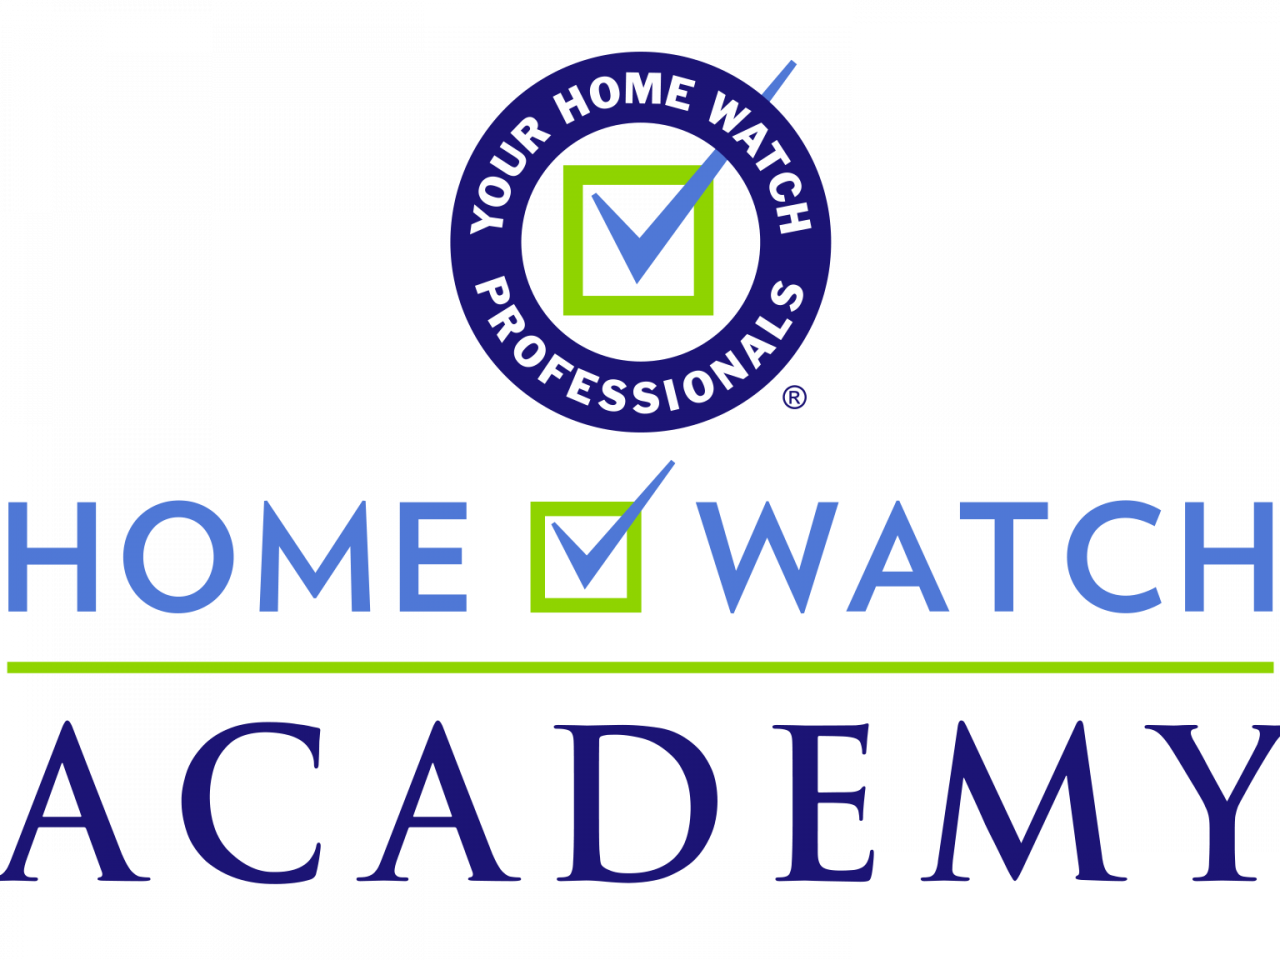 http://machoestates.com/wp-content/uploads/2021/07/HW-Academy-Logo_png-1280x960.png